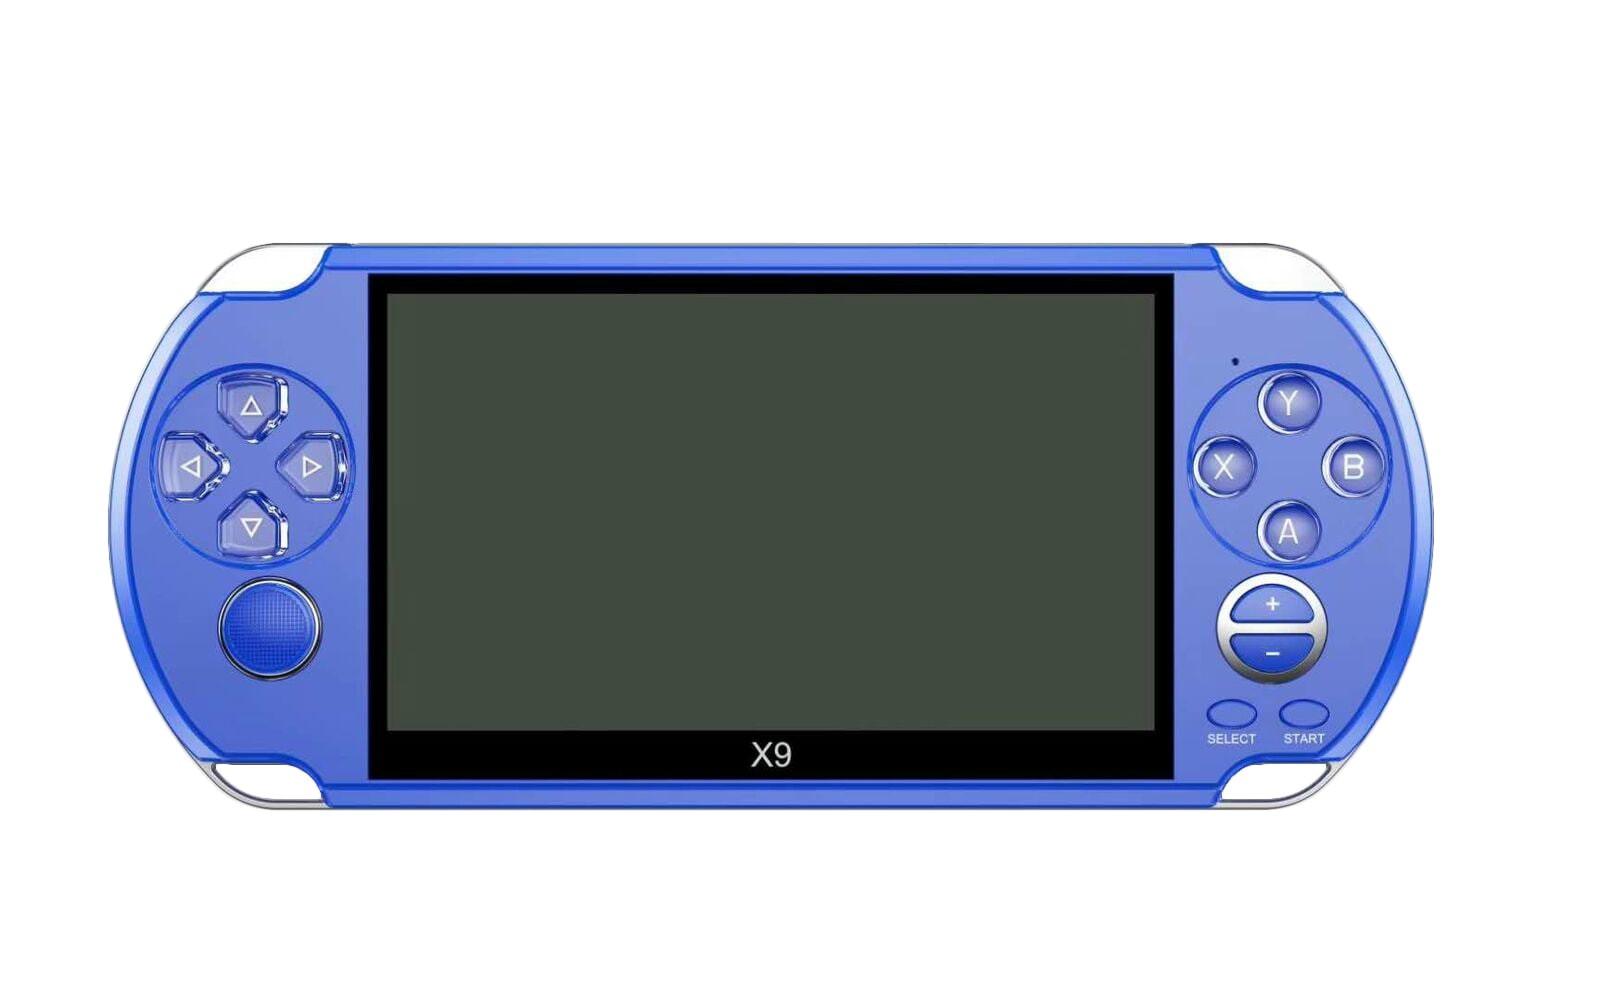 X9 5'' Handheld Video Game Console Retro Player Portable 32/64 Bit Games+ Cable PC White - 8